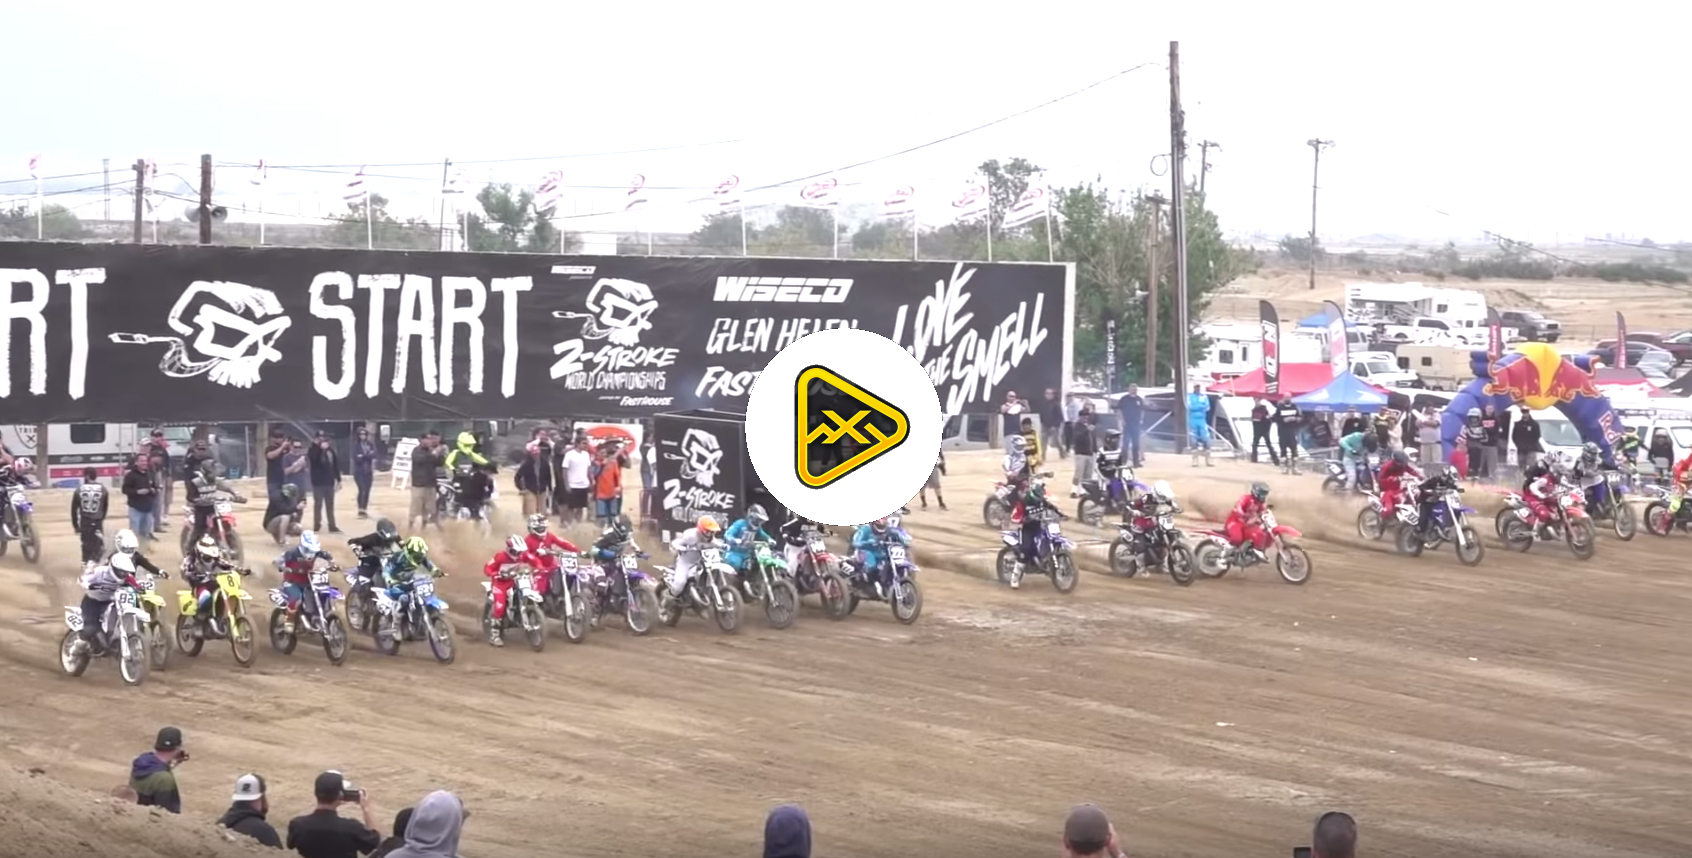 125 Pro Class – Two-Stroke World Championships